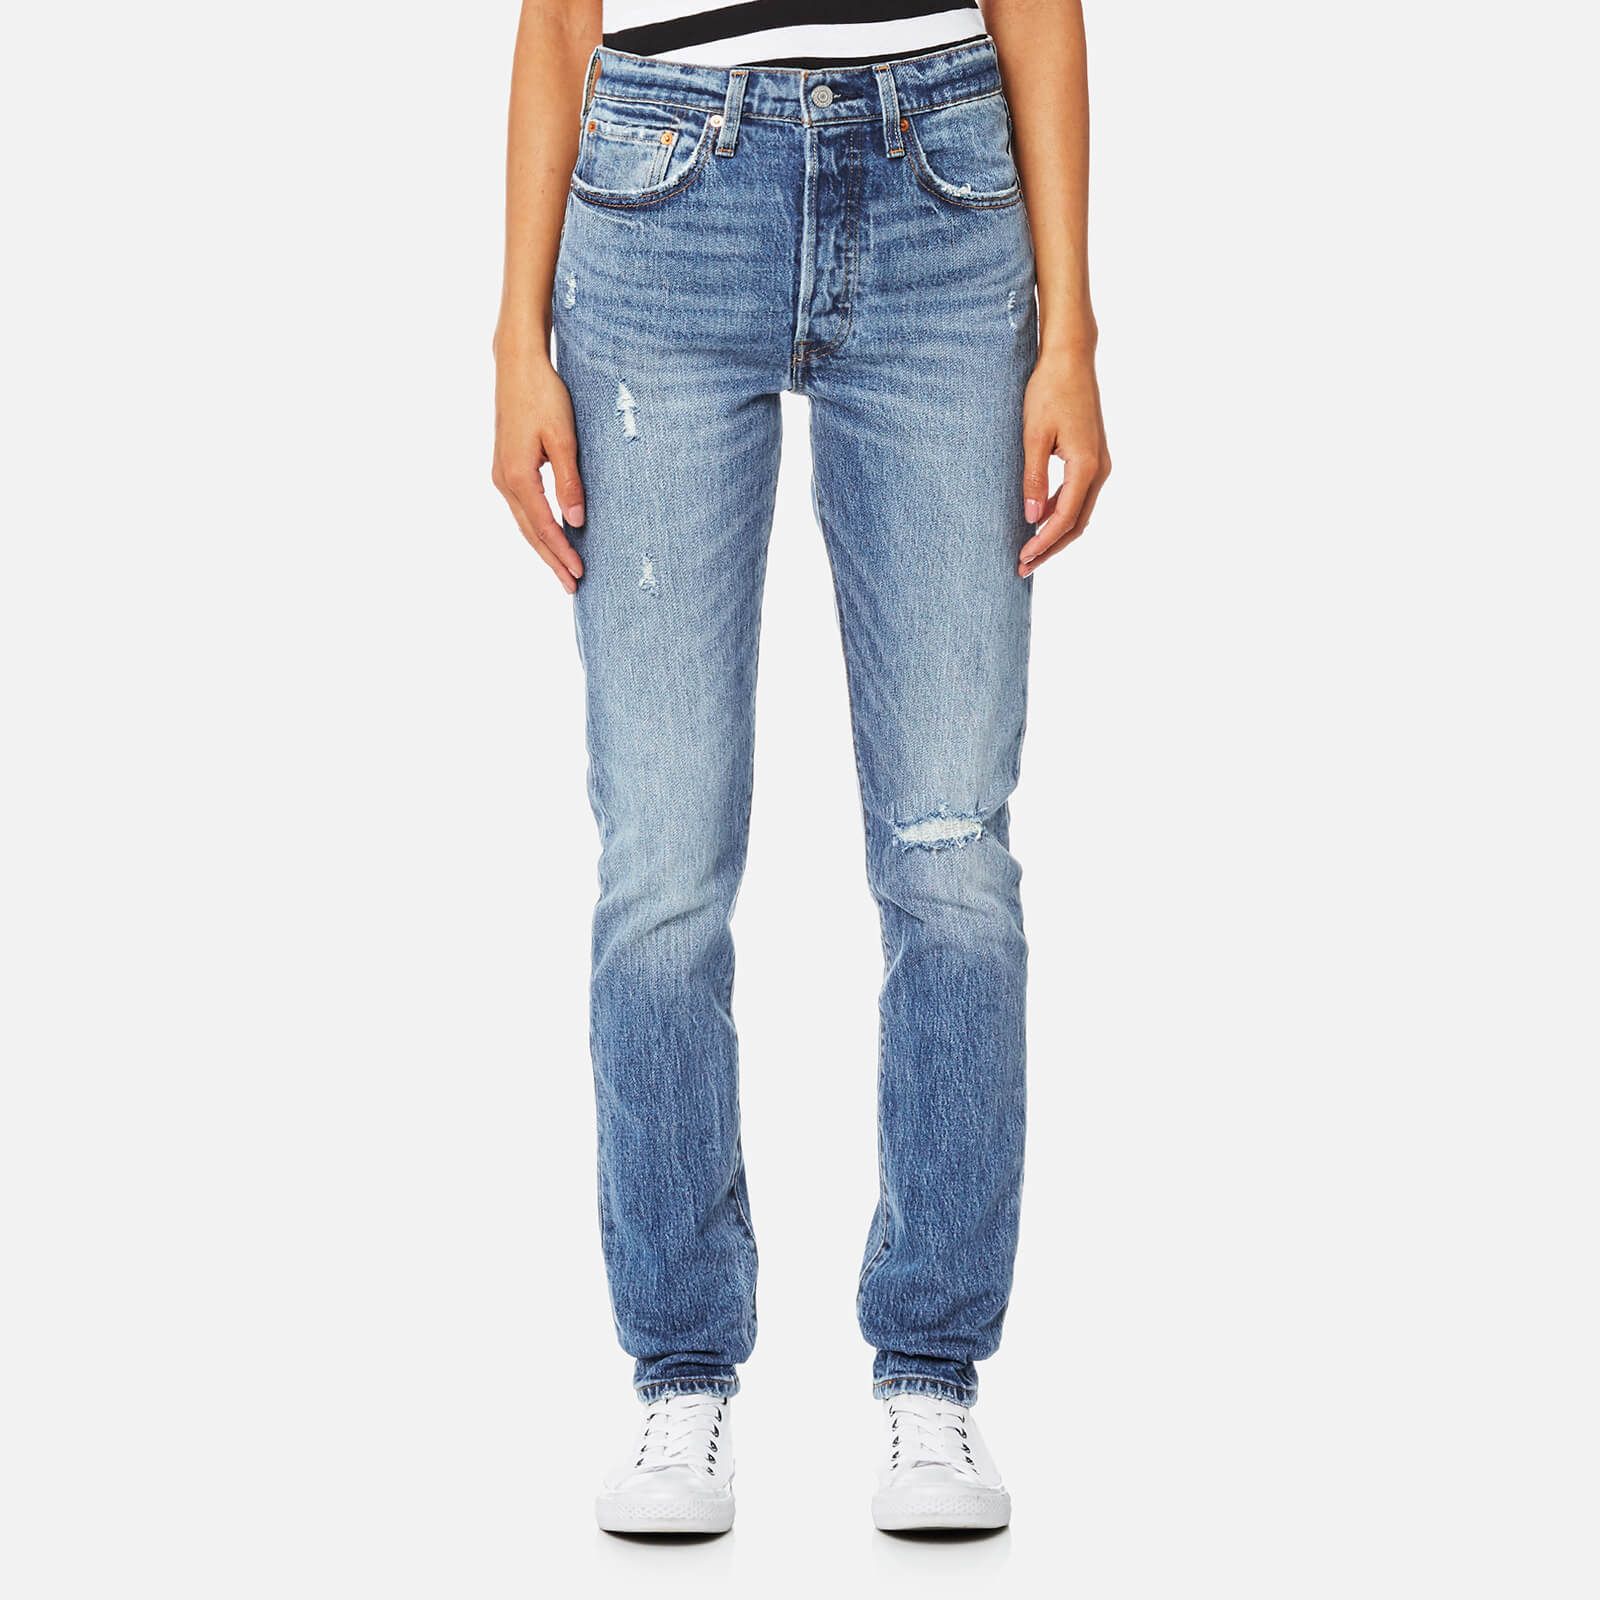 17231e61130cf Levi s Women s 501 Skinny Jeans - Post Modern Blues - Free UK Delivery over  £50